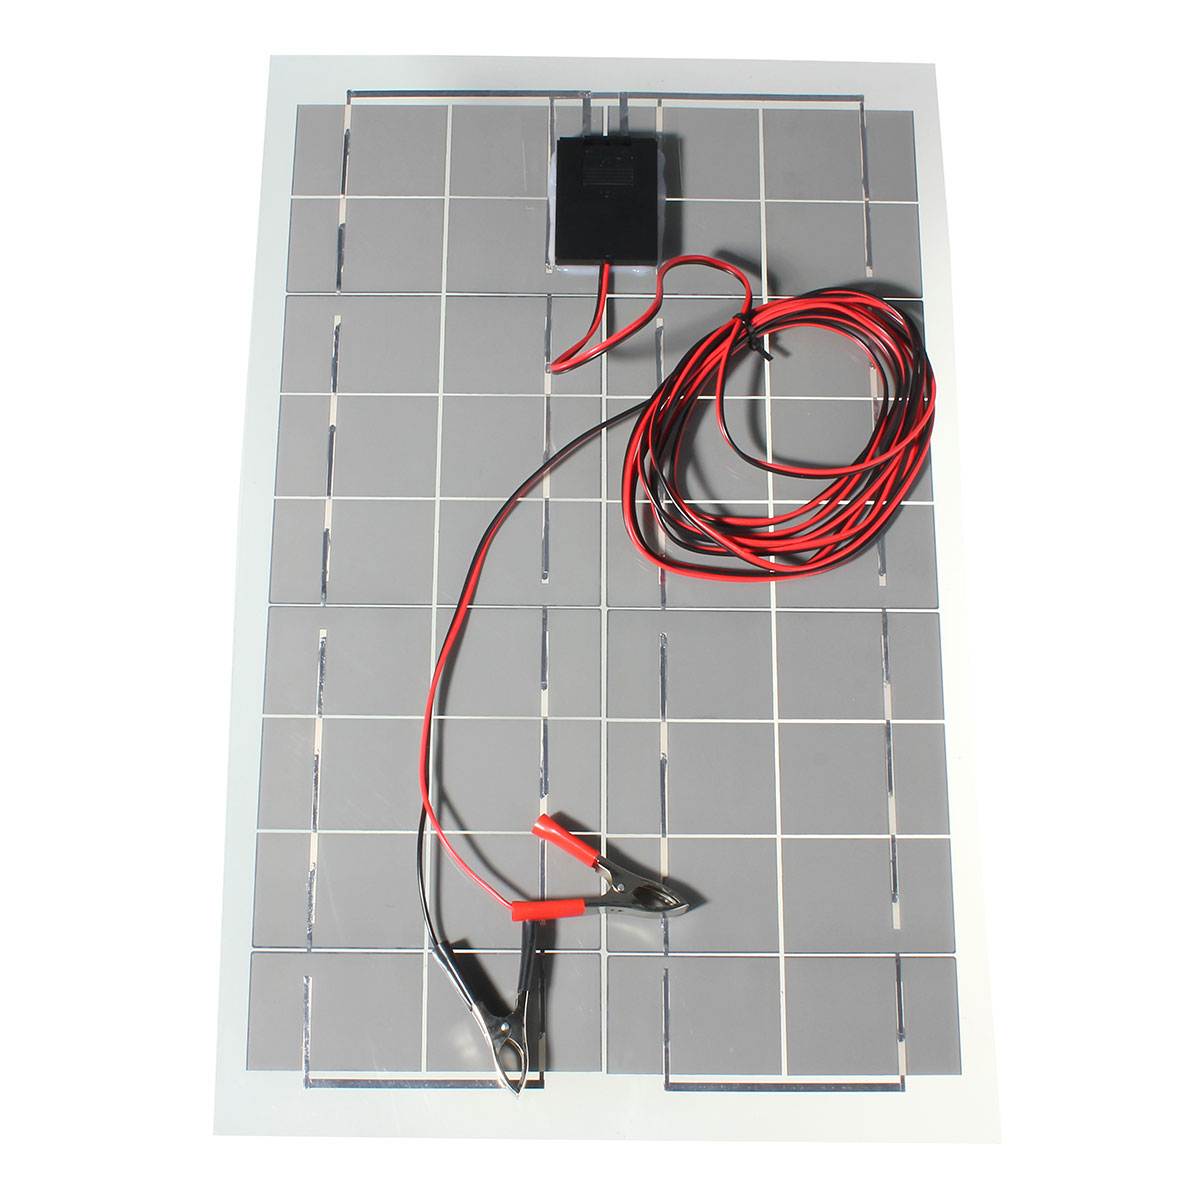 Newest Solor Power Polycrystalline Solar Cells Solar Panel Module Battery Charger with Alligator Clips + Cable 5W/10W/20W/30W<br>